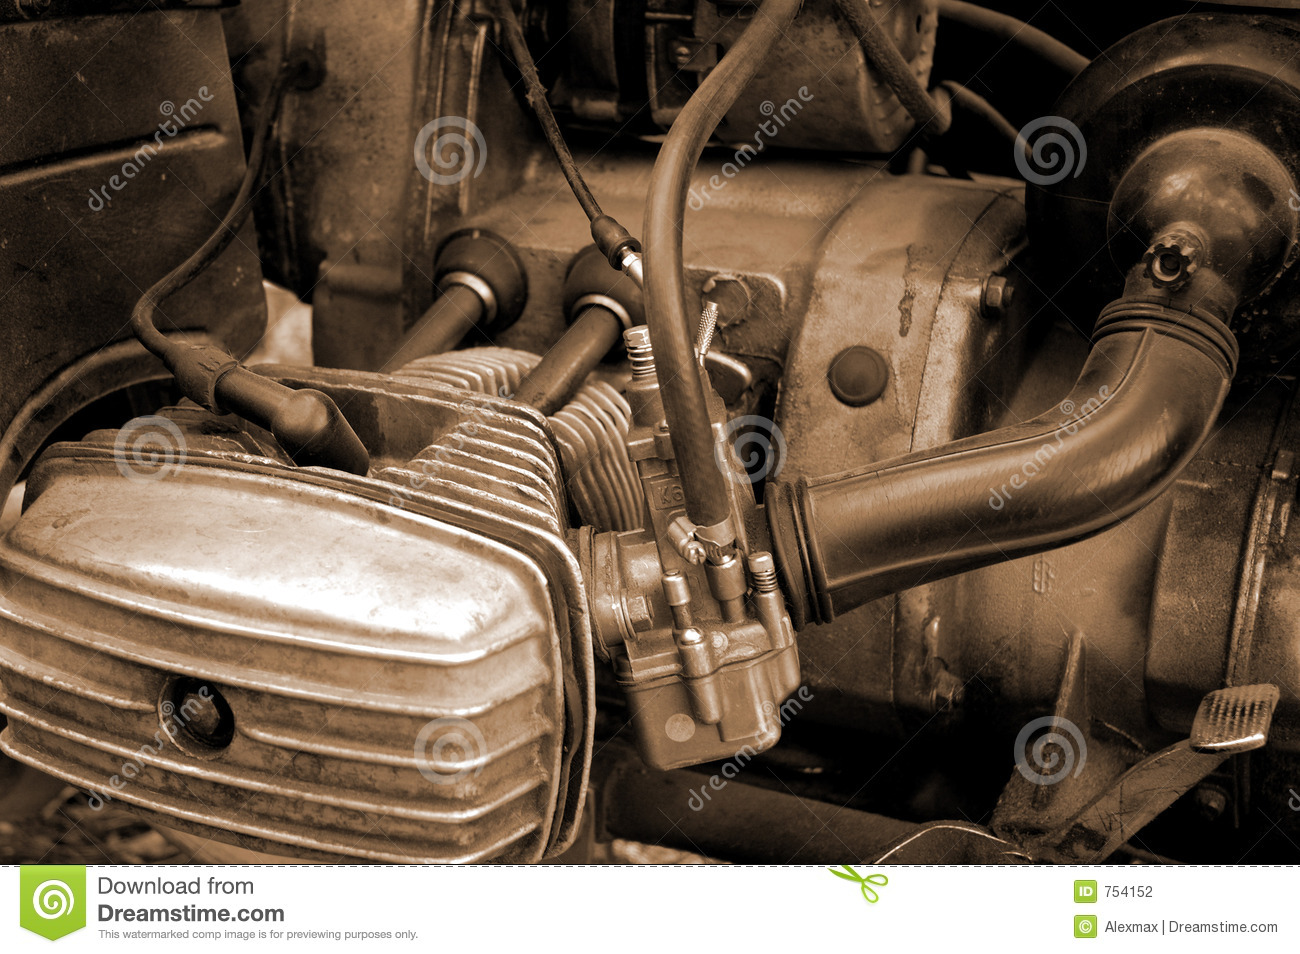 Motorcycle Engine Close Up Abstract Background on Spark Plug System